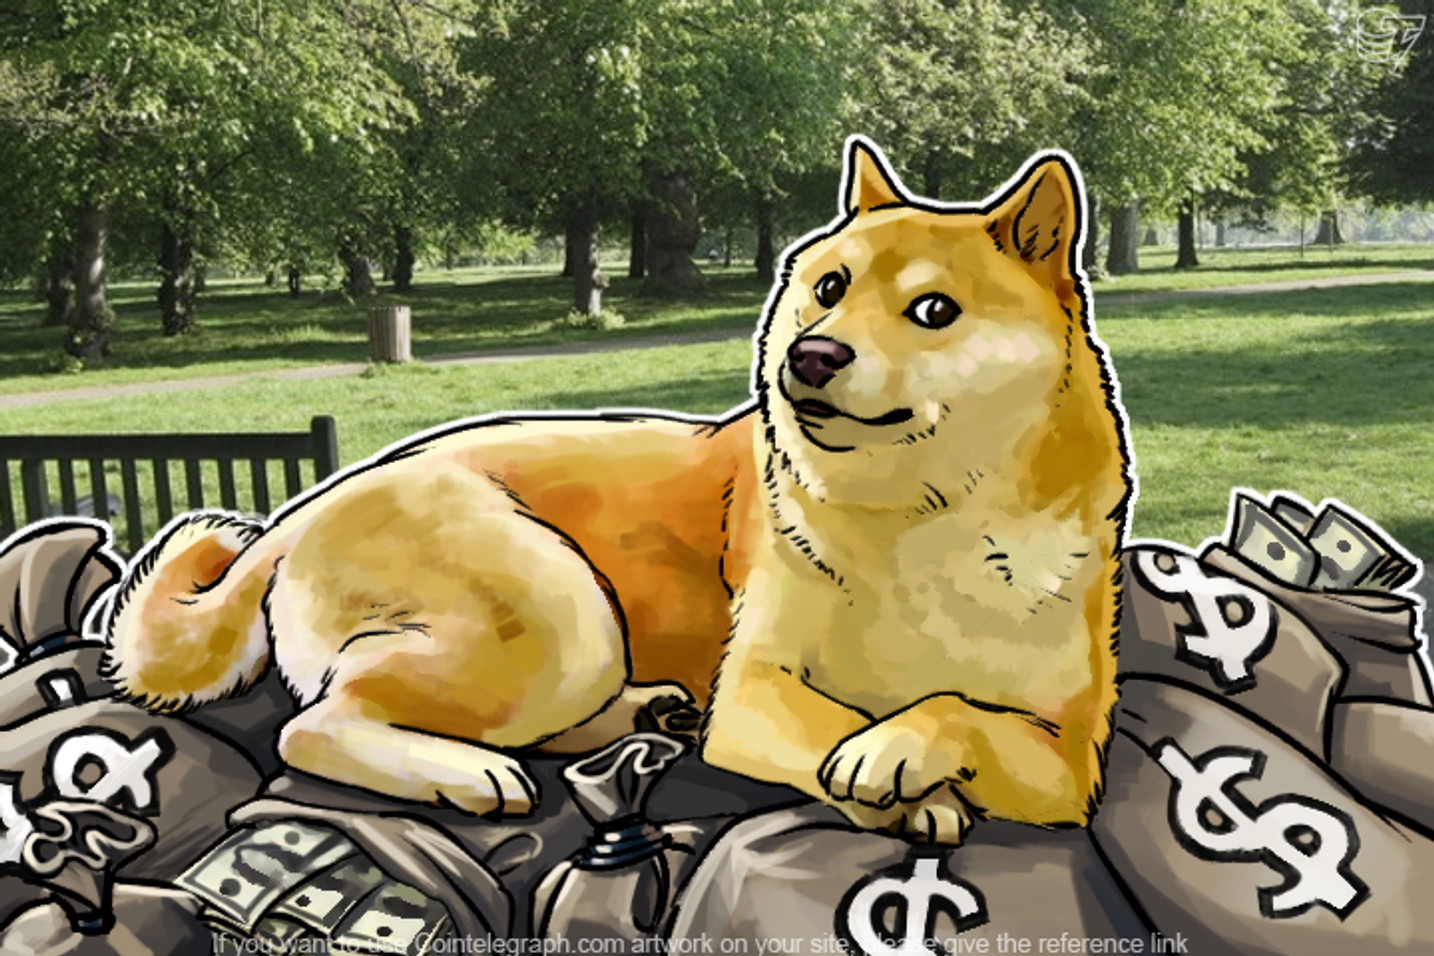 Dogecoin — A Joke That Turned Into a Multi-Million Dollar Business